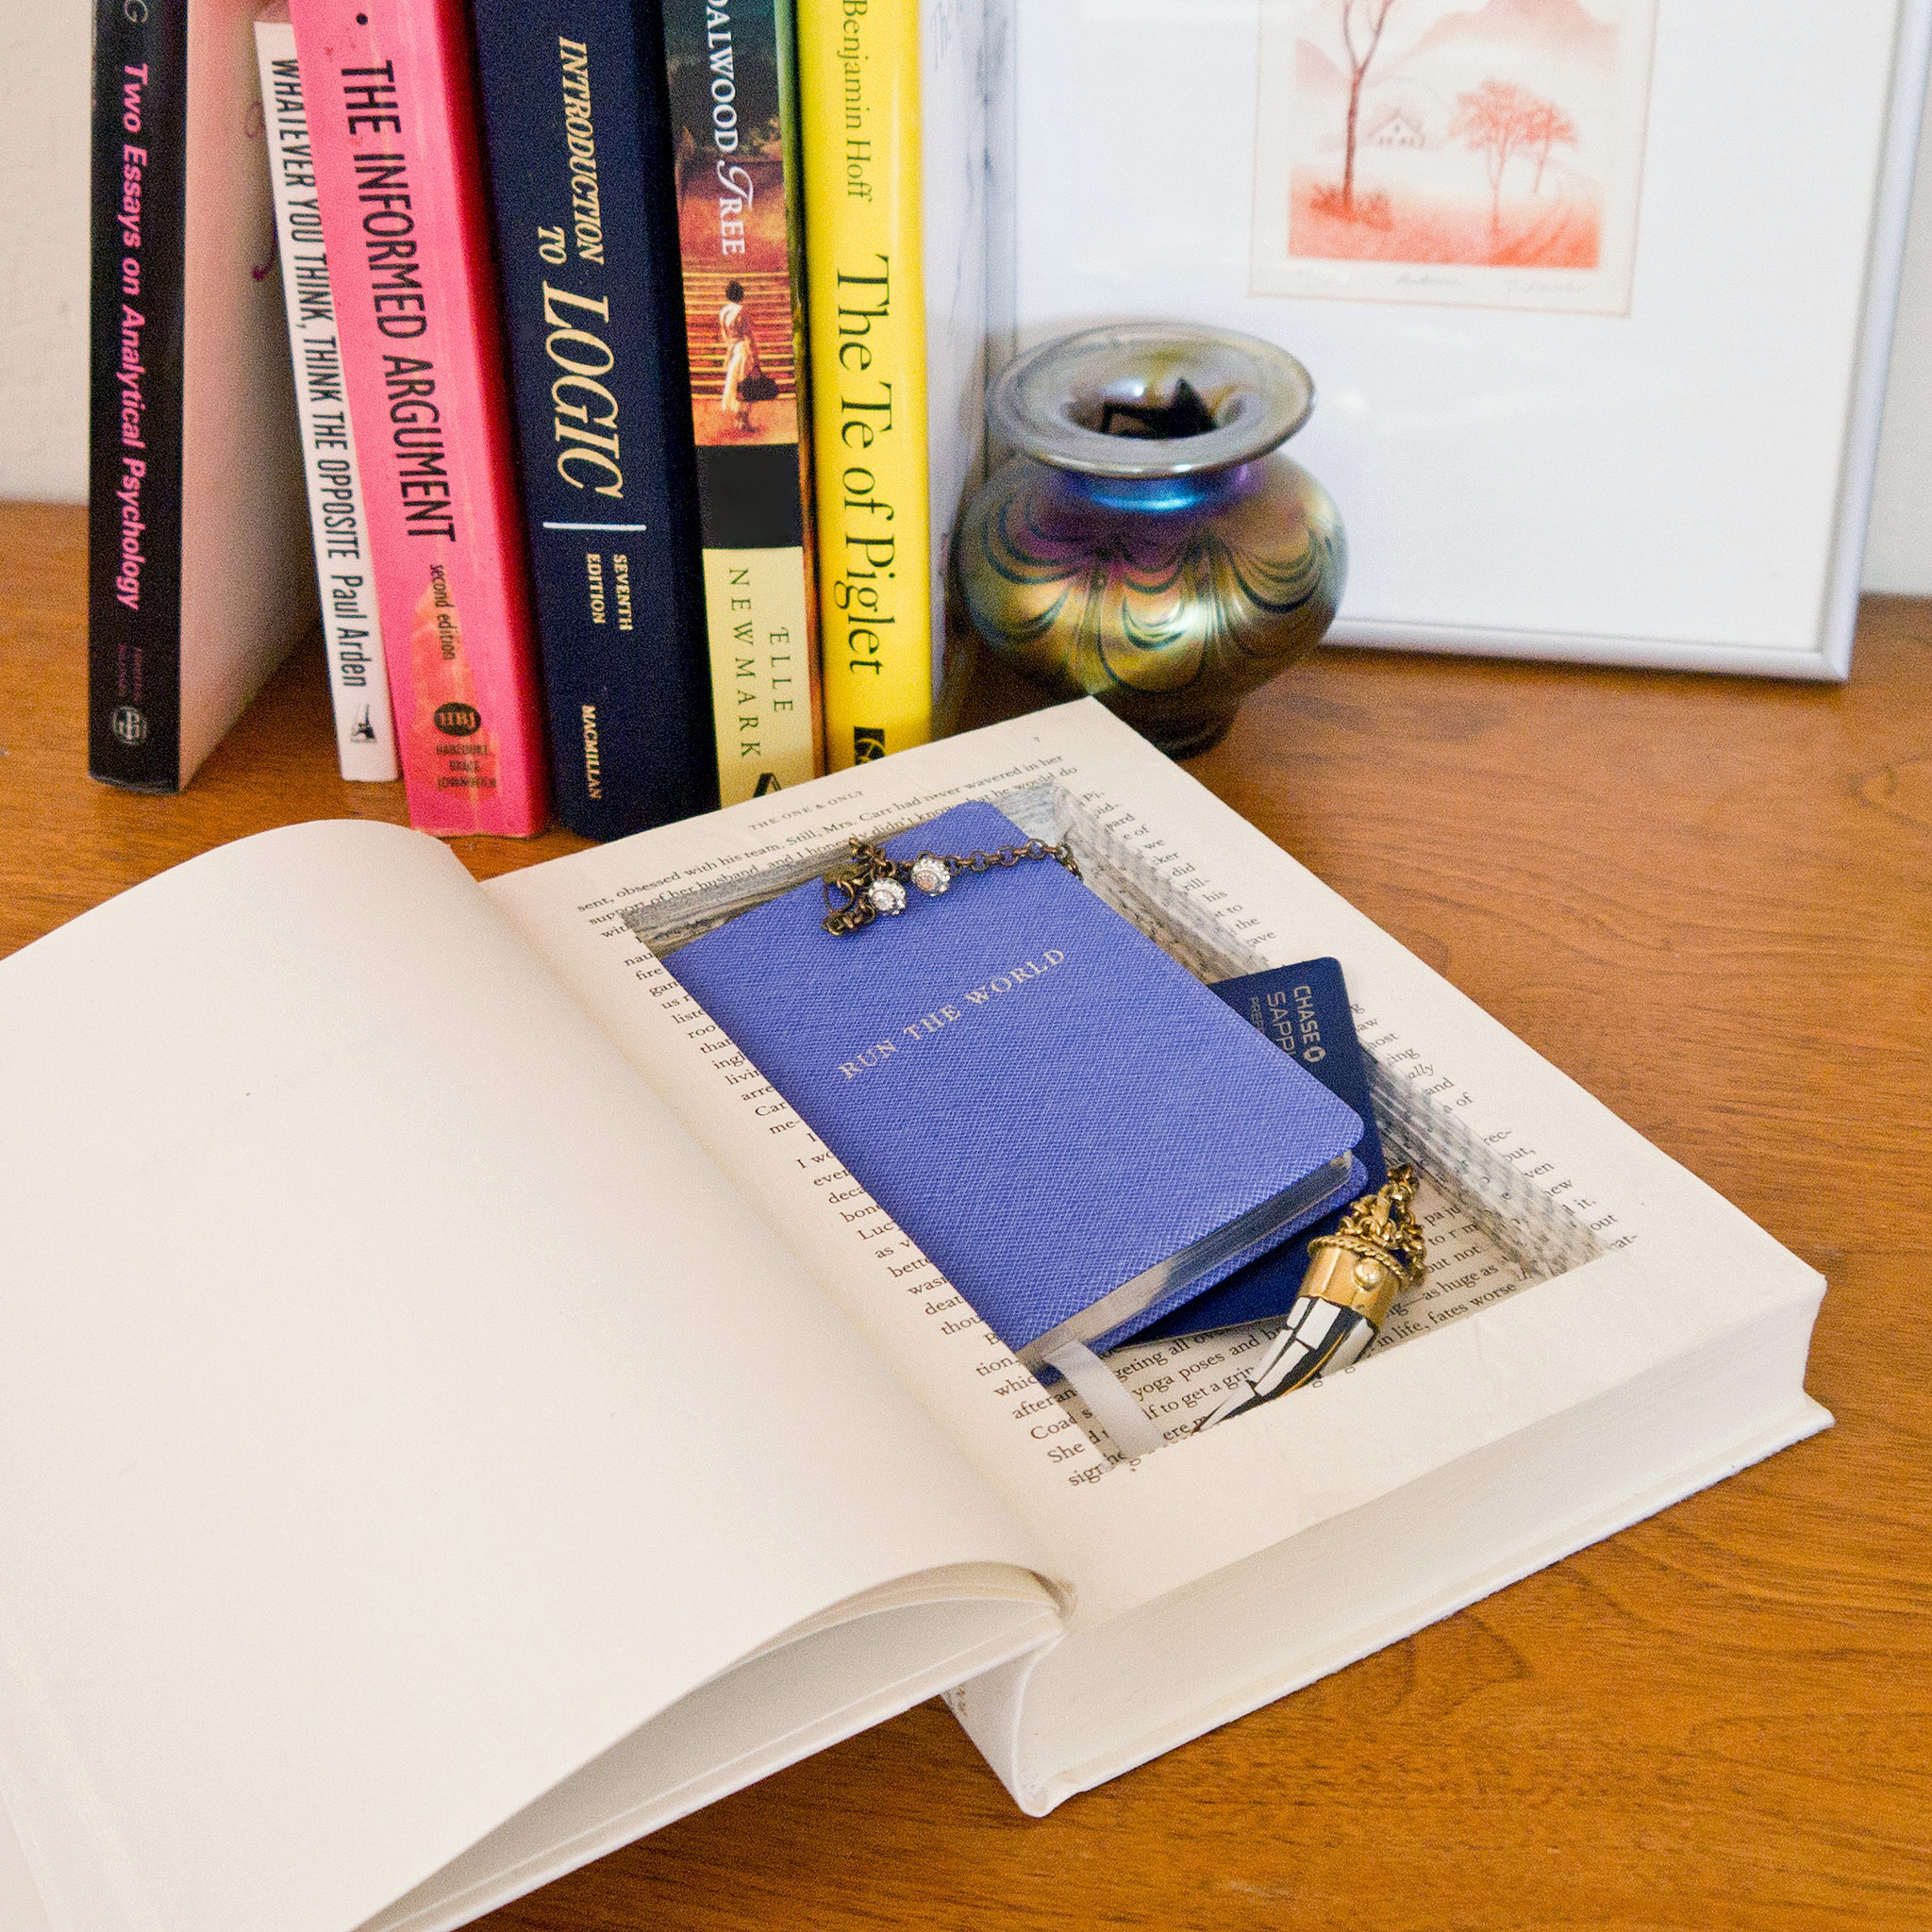 Diy stash book popsugar smart living for Birthday gifts for travel lovers